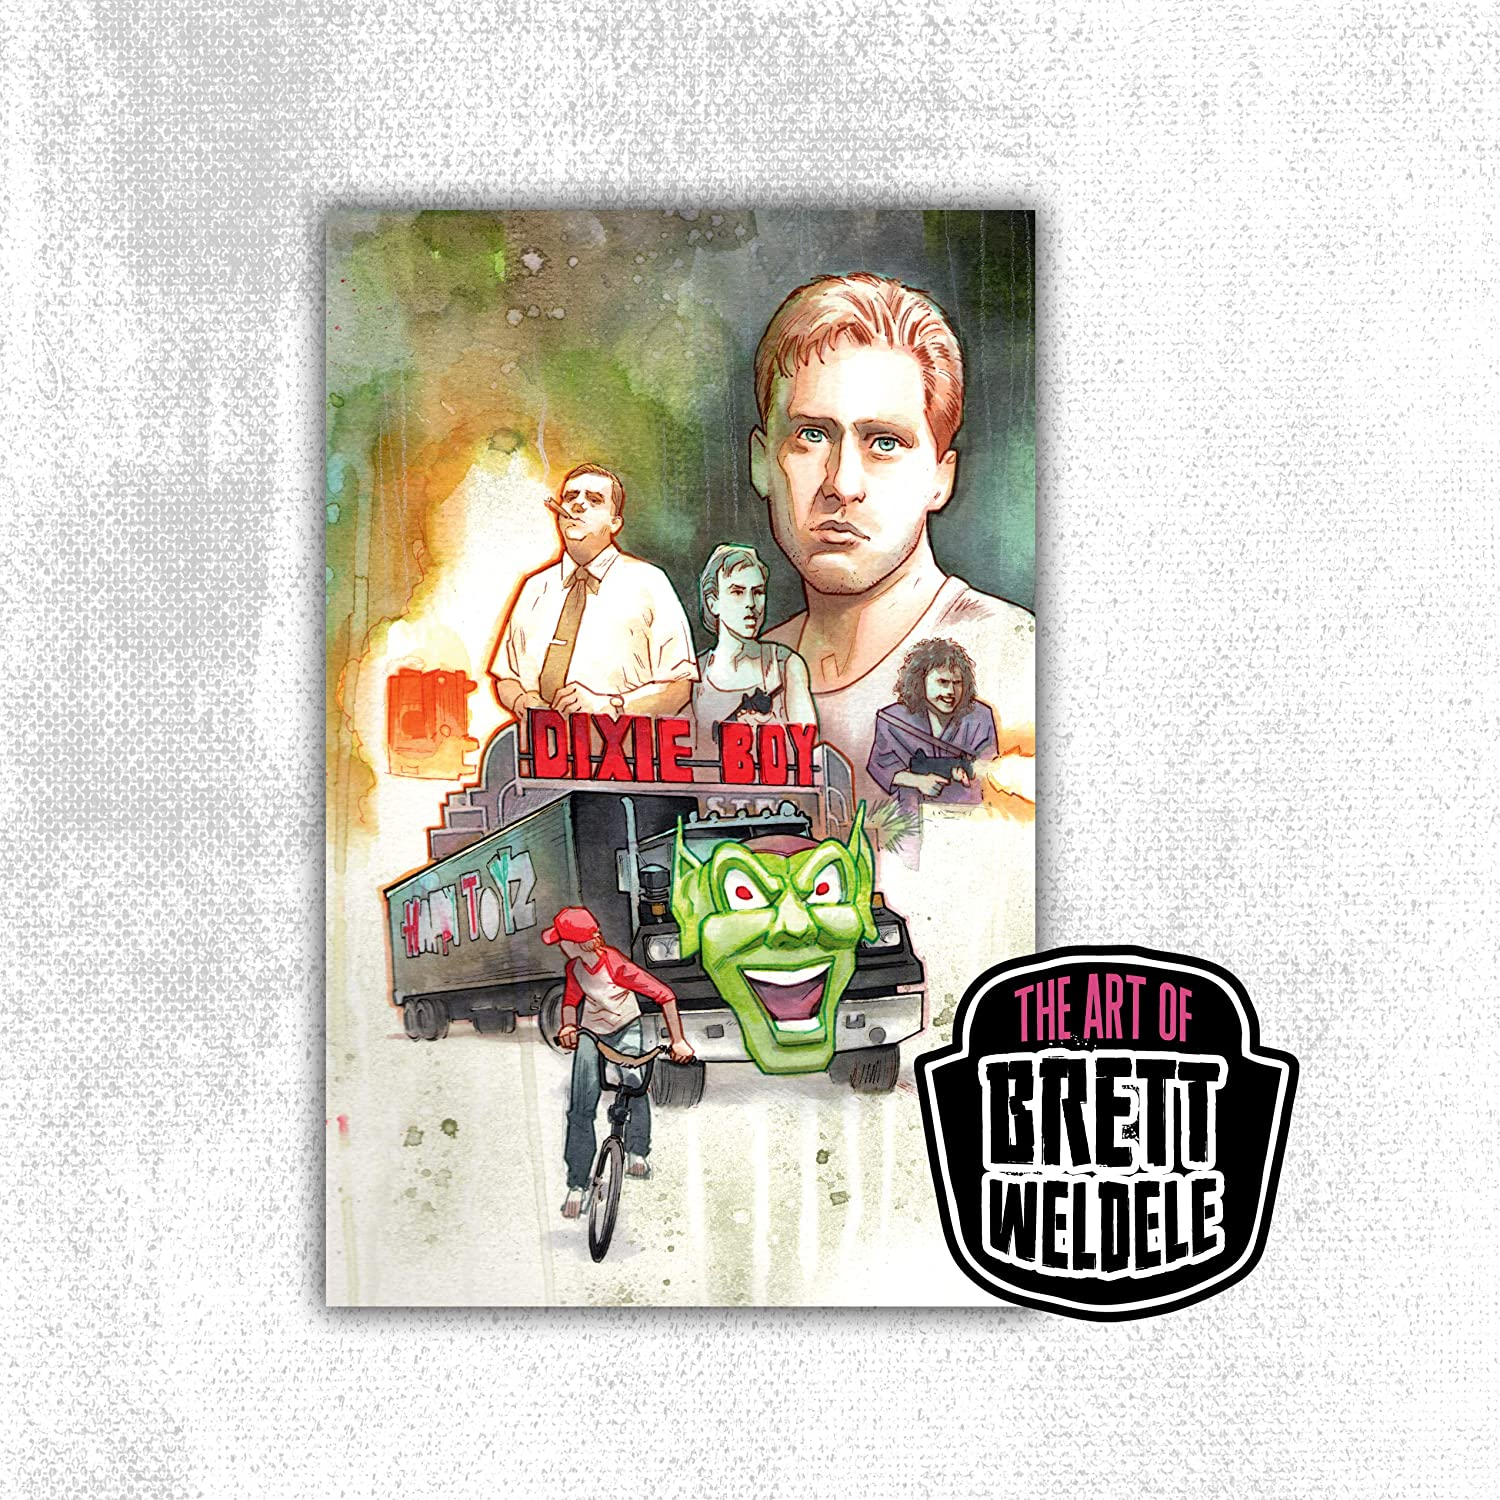 MAXIMUM OVERDRIVE - The Stephen King Collection - premium watercolor art print - movie poster - 11x17 - signed